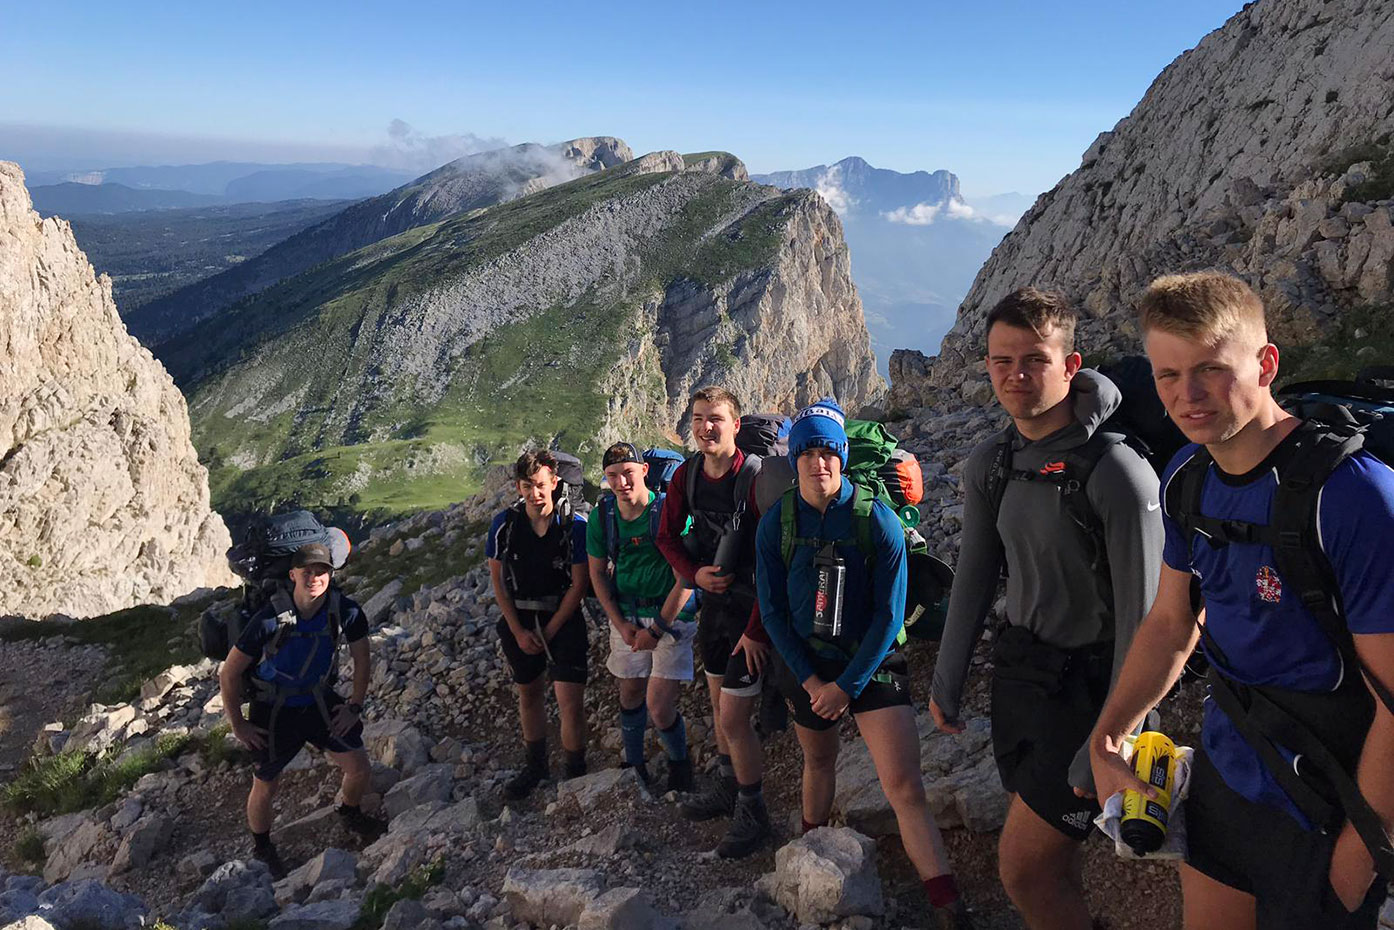 Duke of Edinburgh Gold Qualifying Expedition to the Vercors Plateau, France